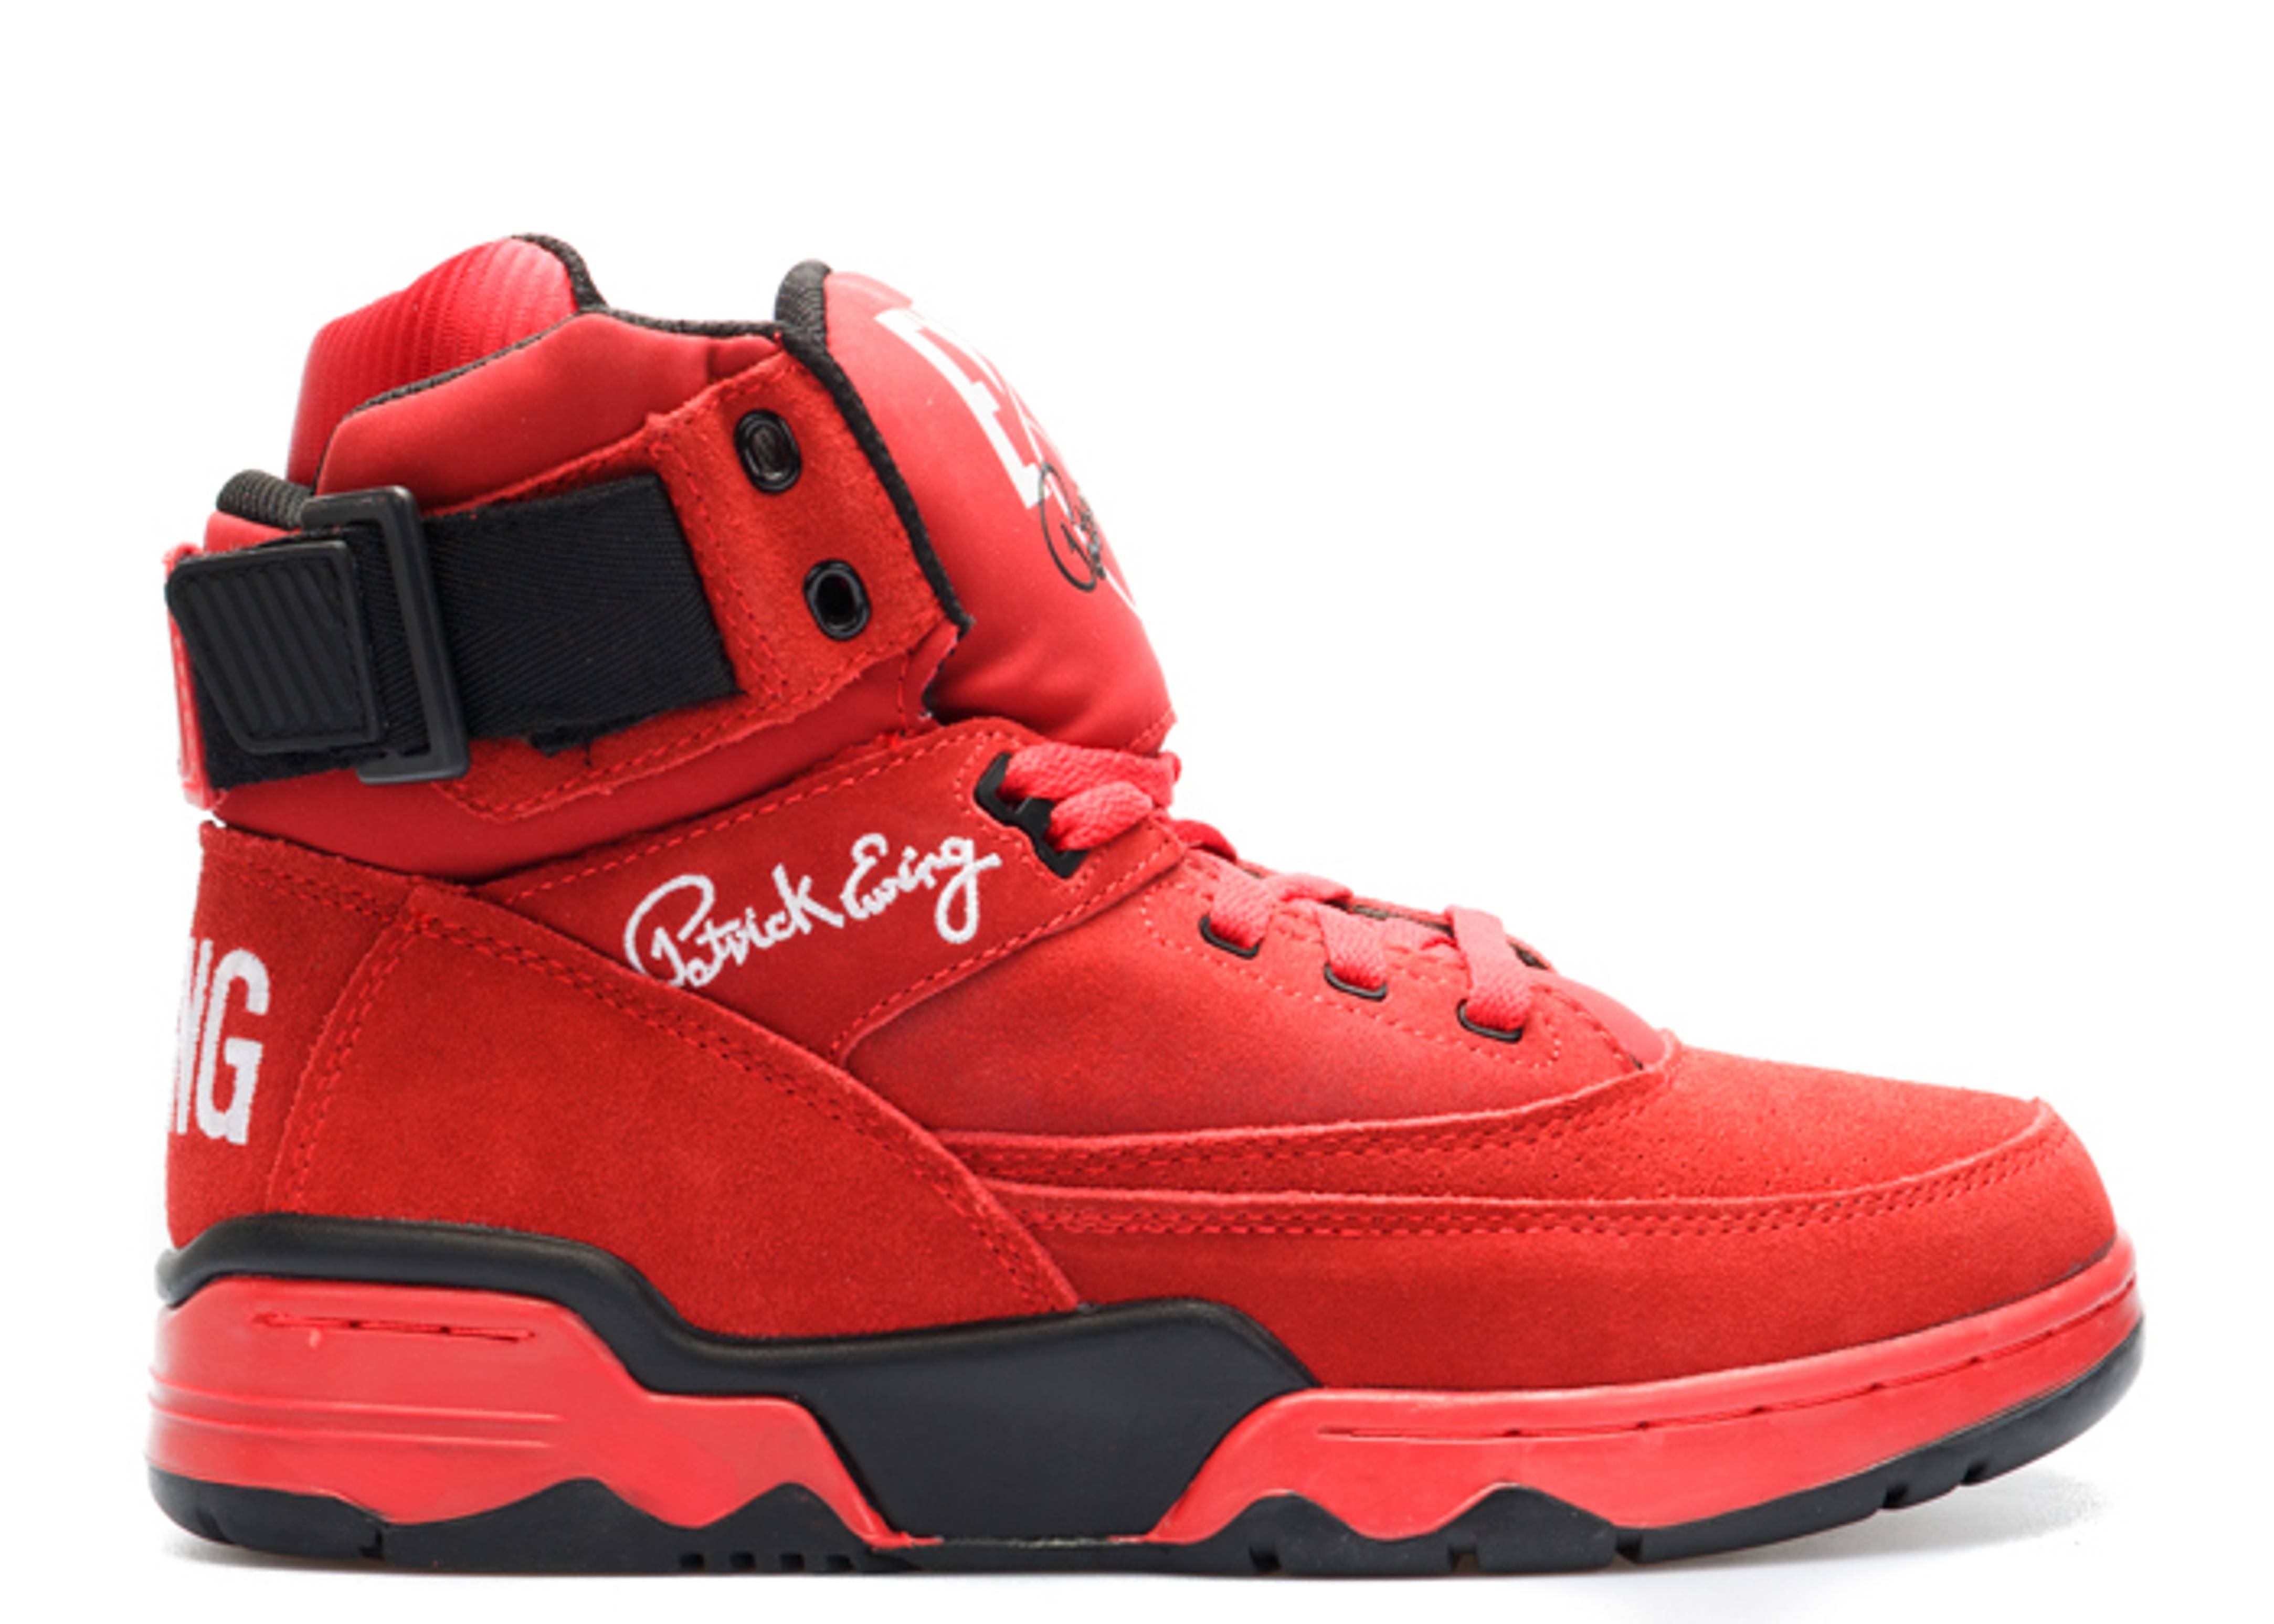 Ewing Shoes Red